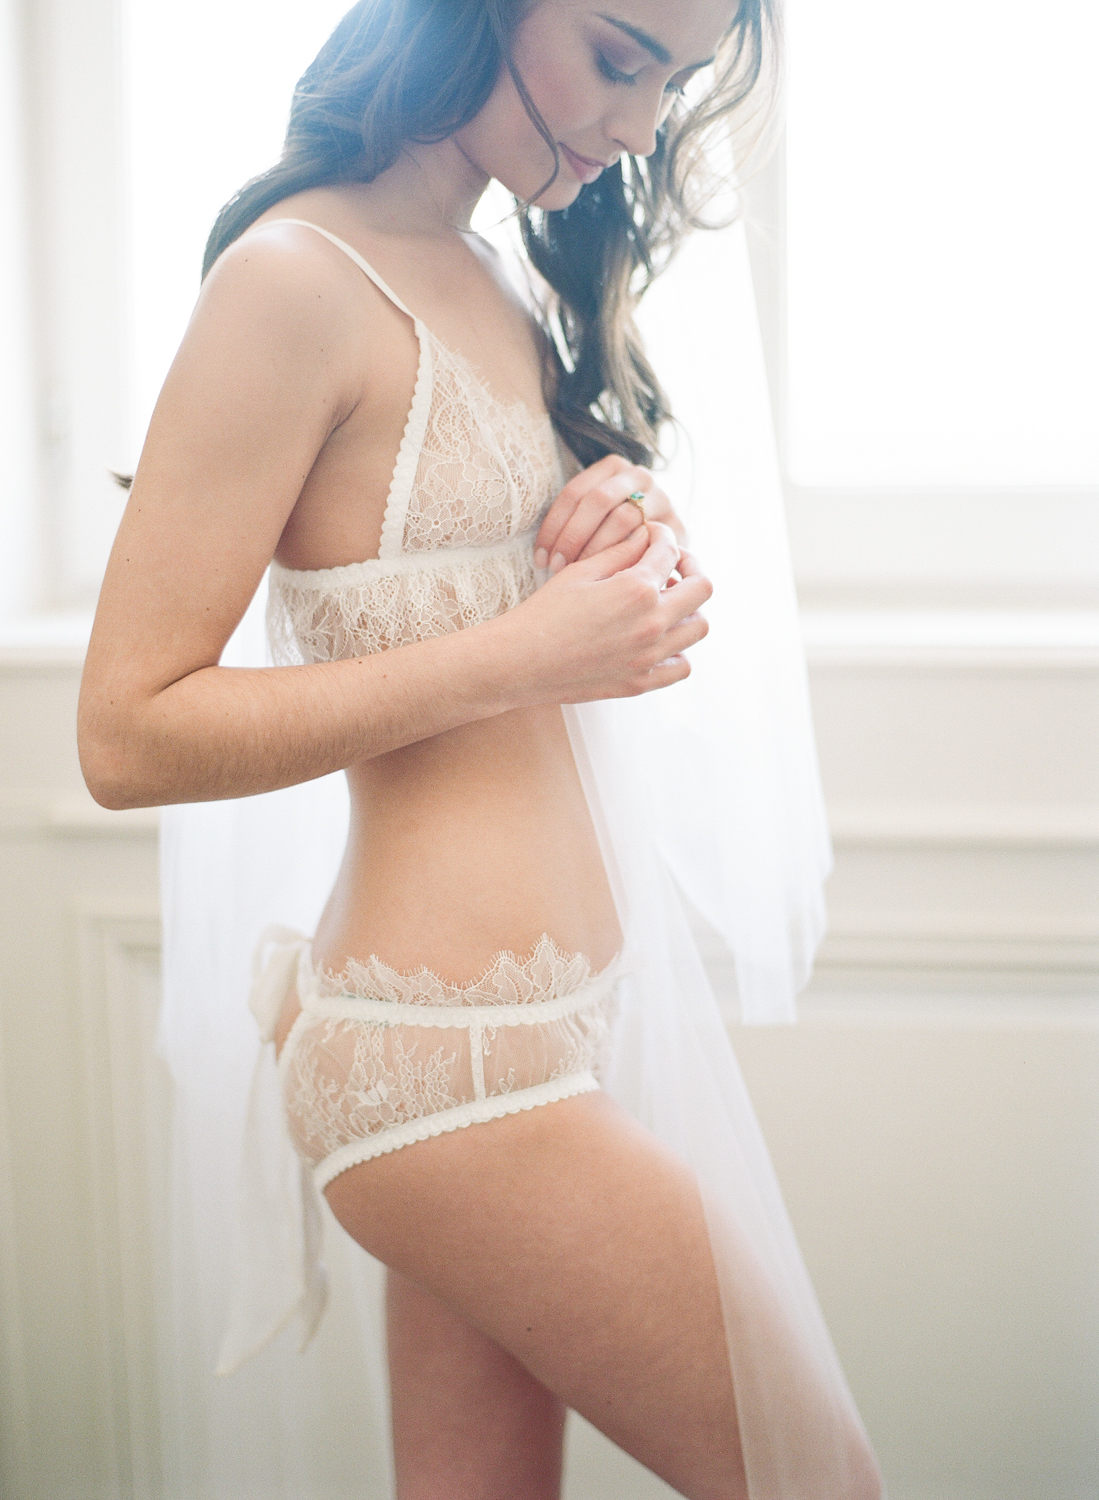 Bride in lingerie and veil before the wedding ceremony; Sylvie Gil Photography